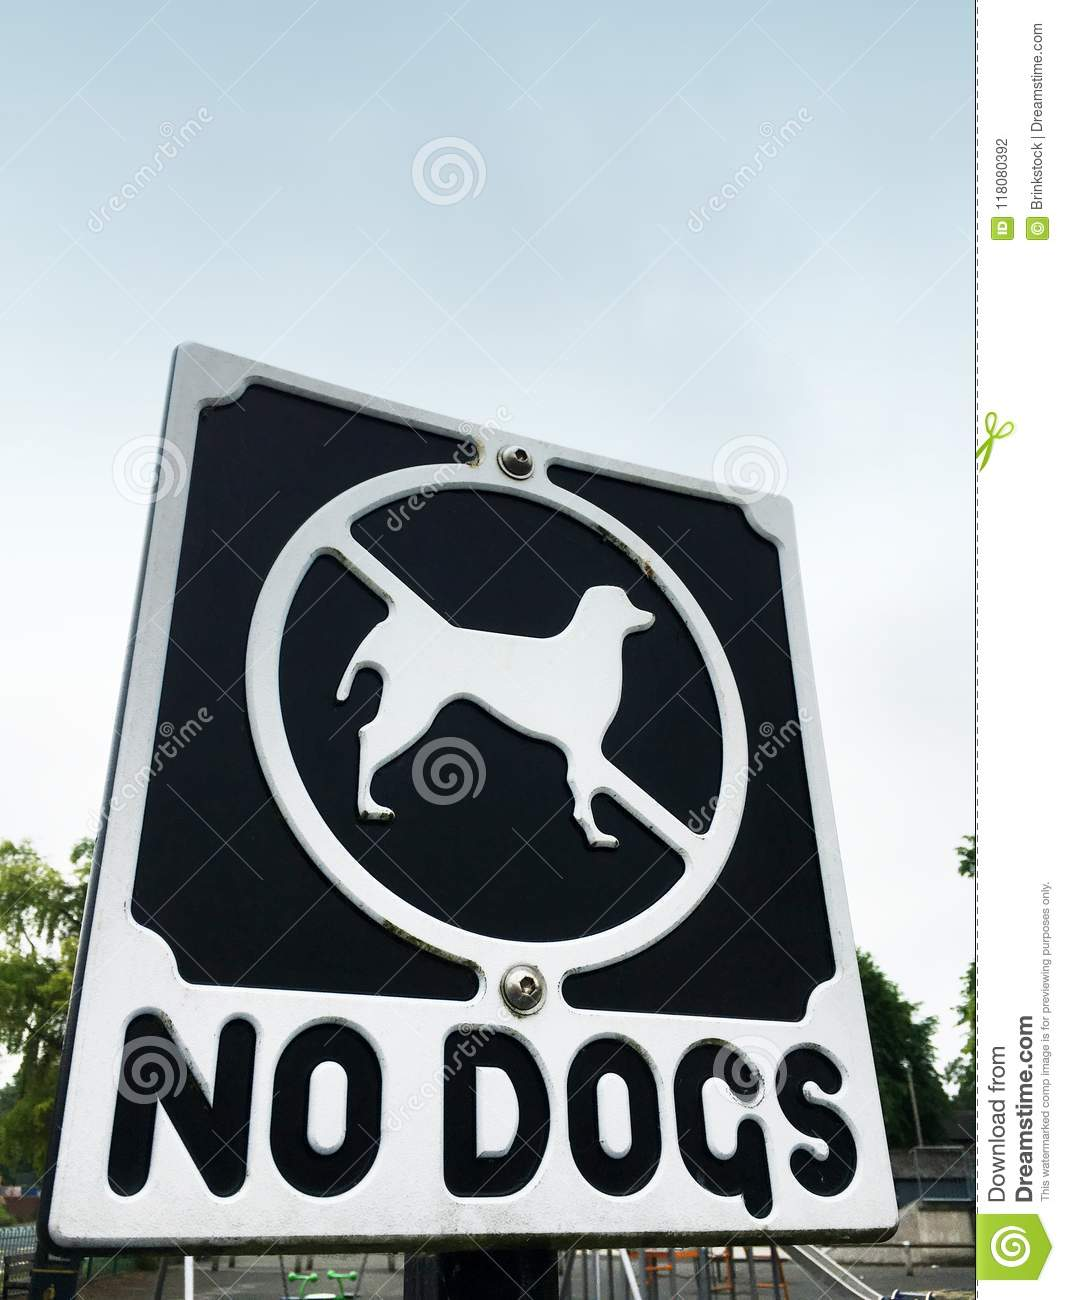 No dogs sign in children`s play area UK